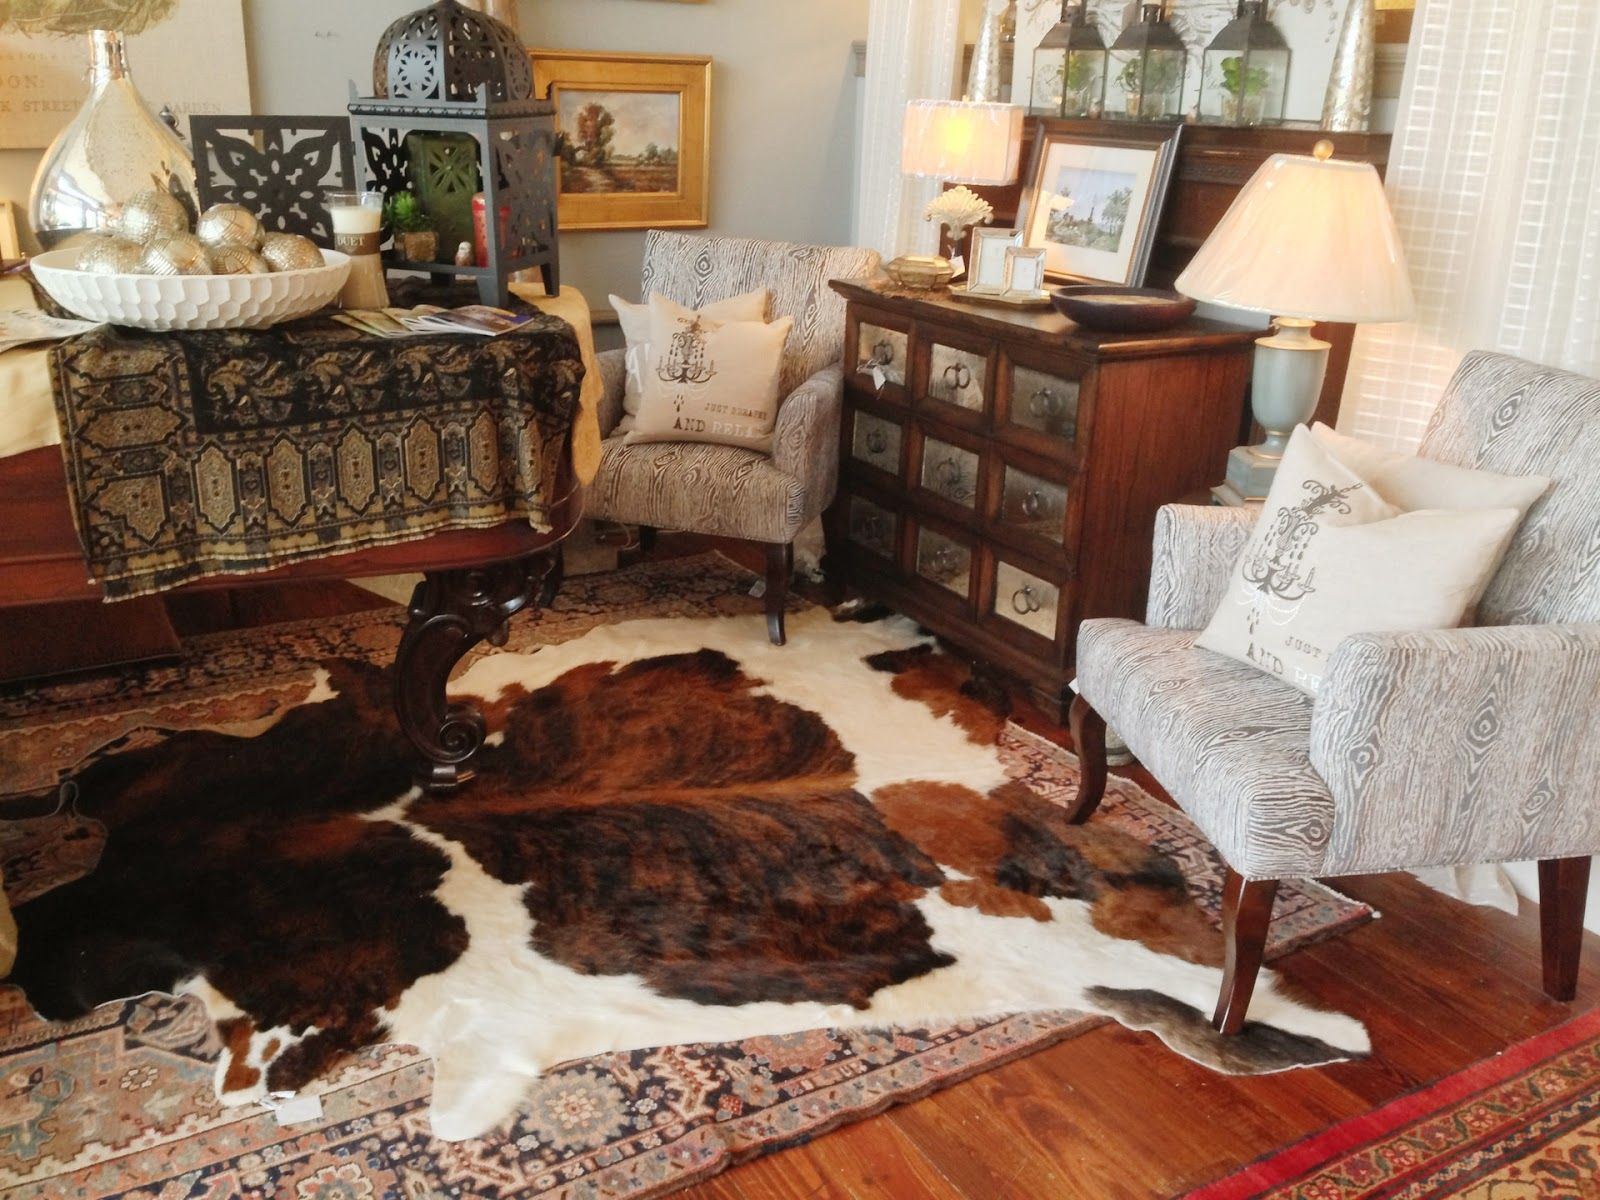 Nice Faux Cowhide Rug Cowhide Rug Living Room Rug Decor Cowhide Rug Decor #nice #rug #for #living #room